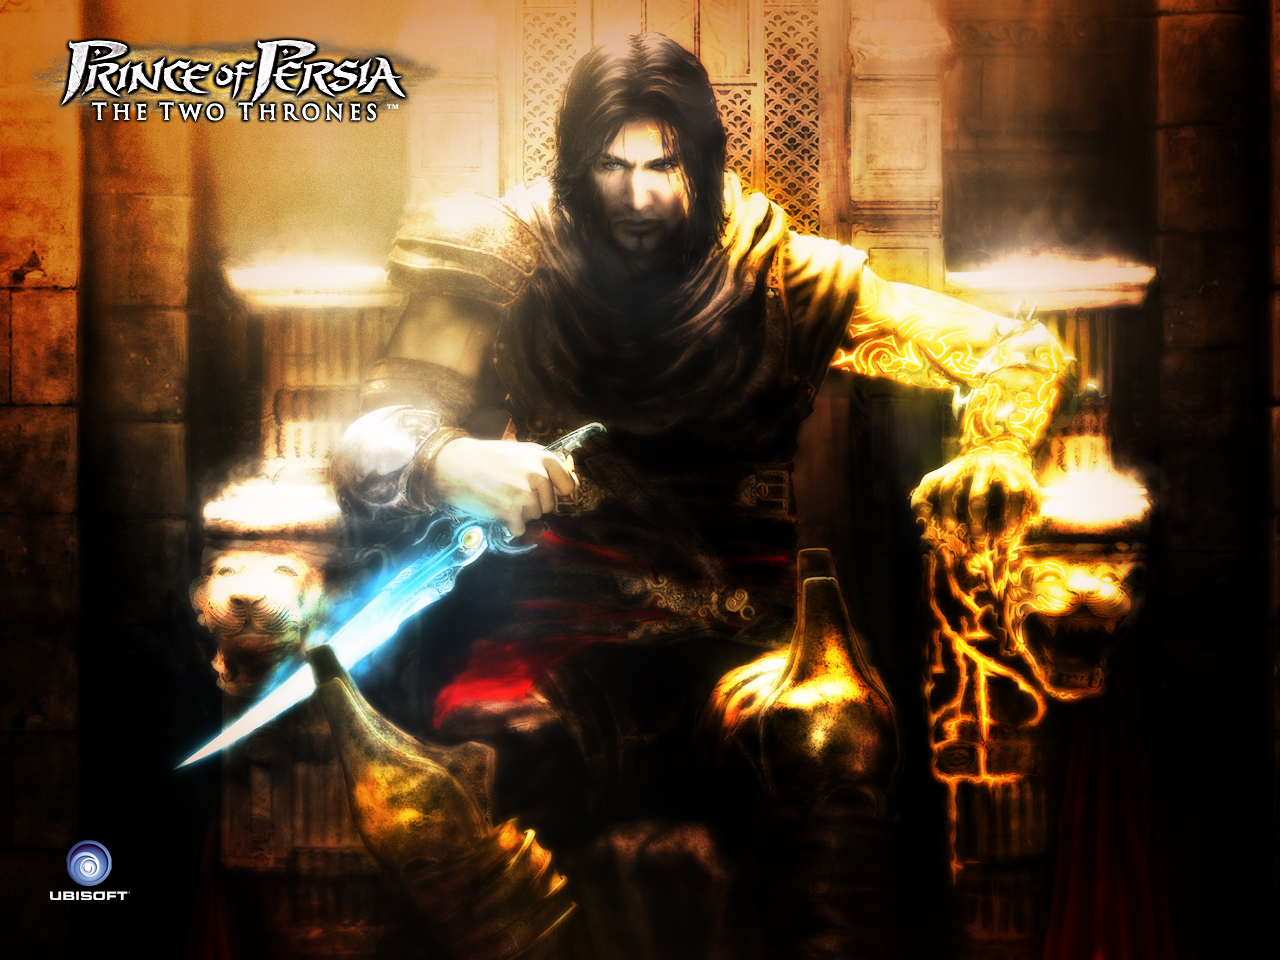 wp3_1280.jpg - Prince of Persia: The Two Thrones